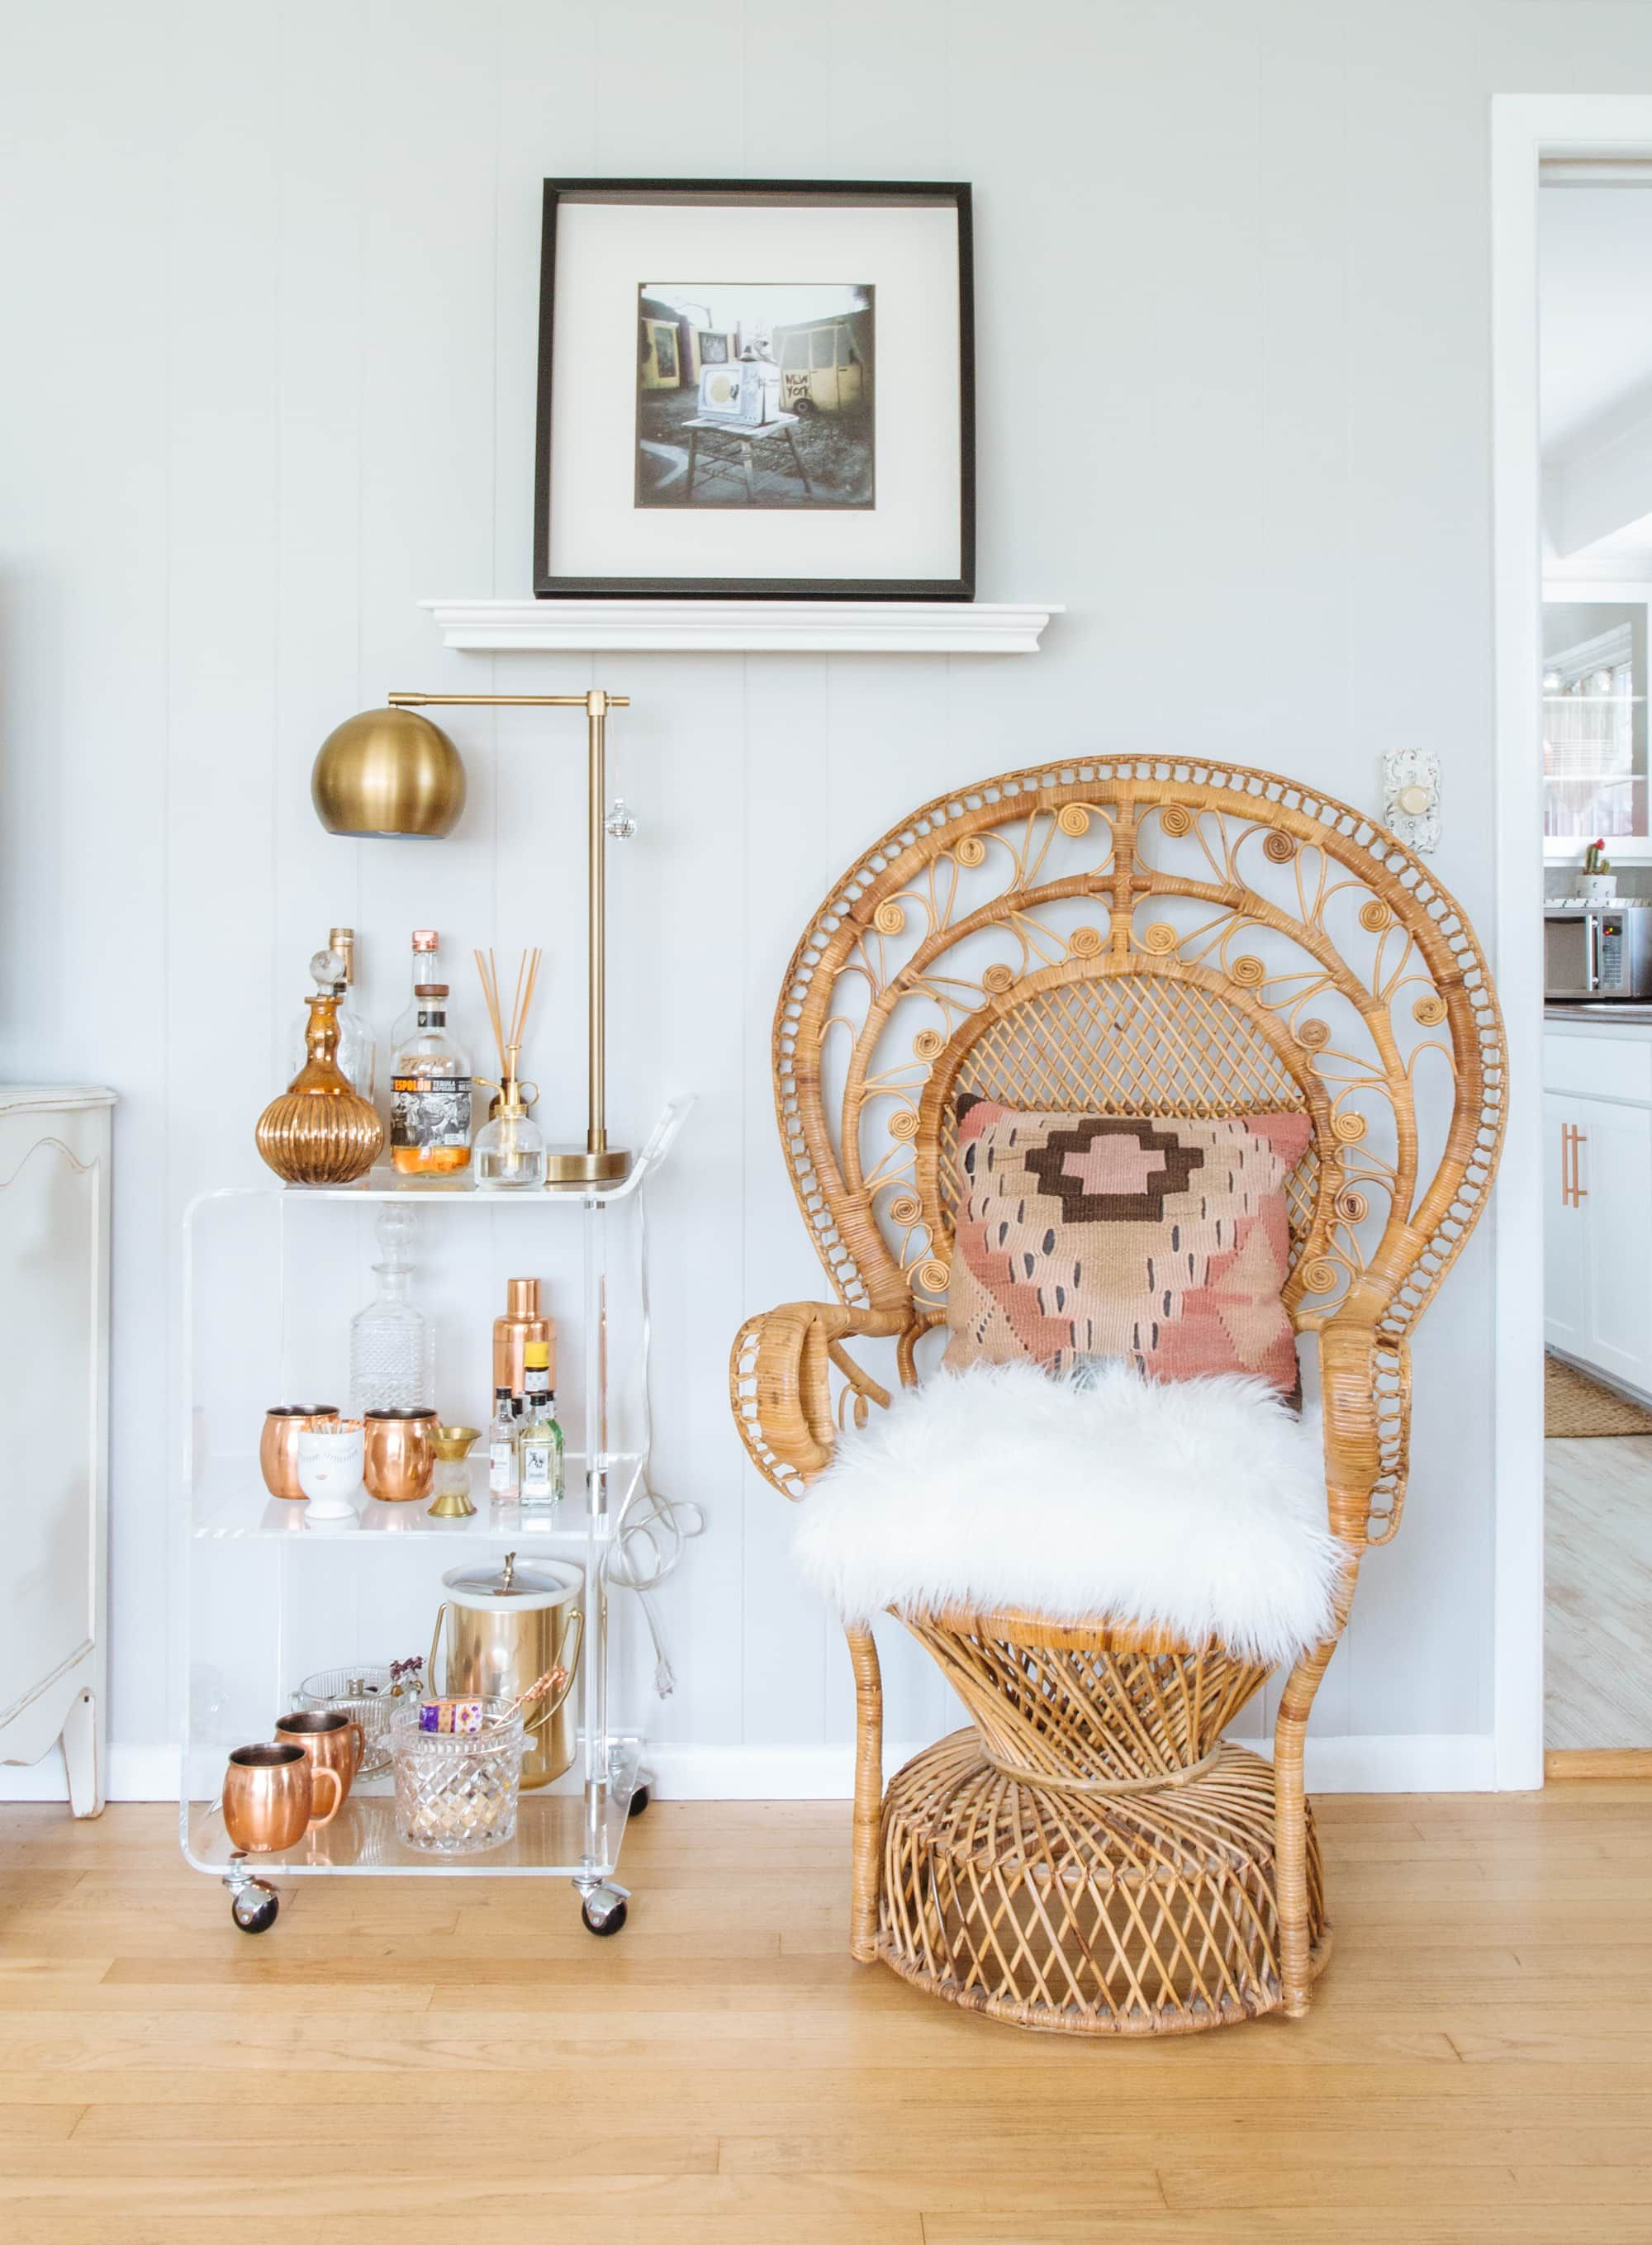 Rattan peacock chair via Diana Paulson and Apartment Therapy